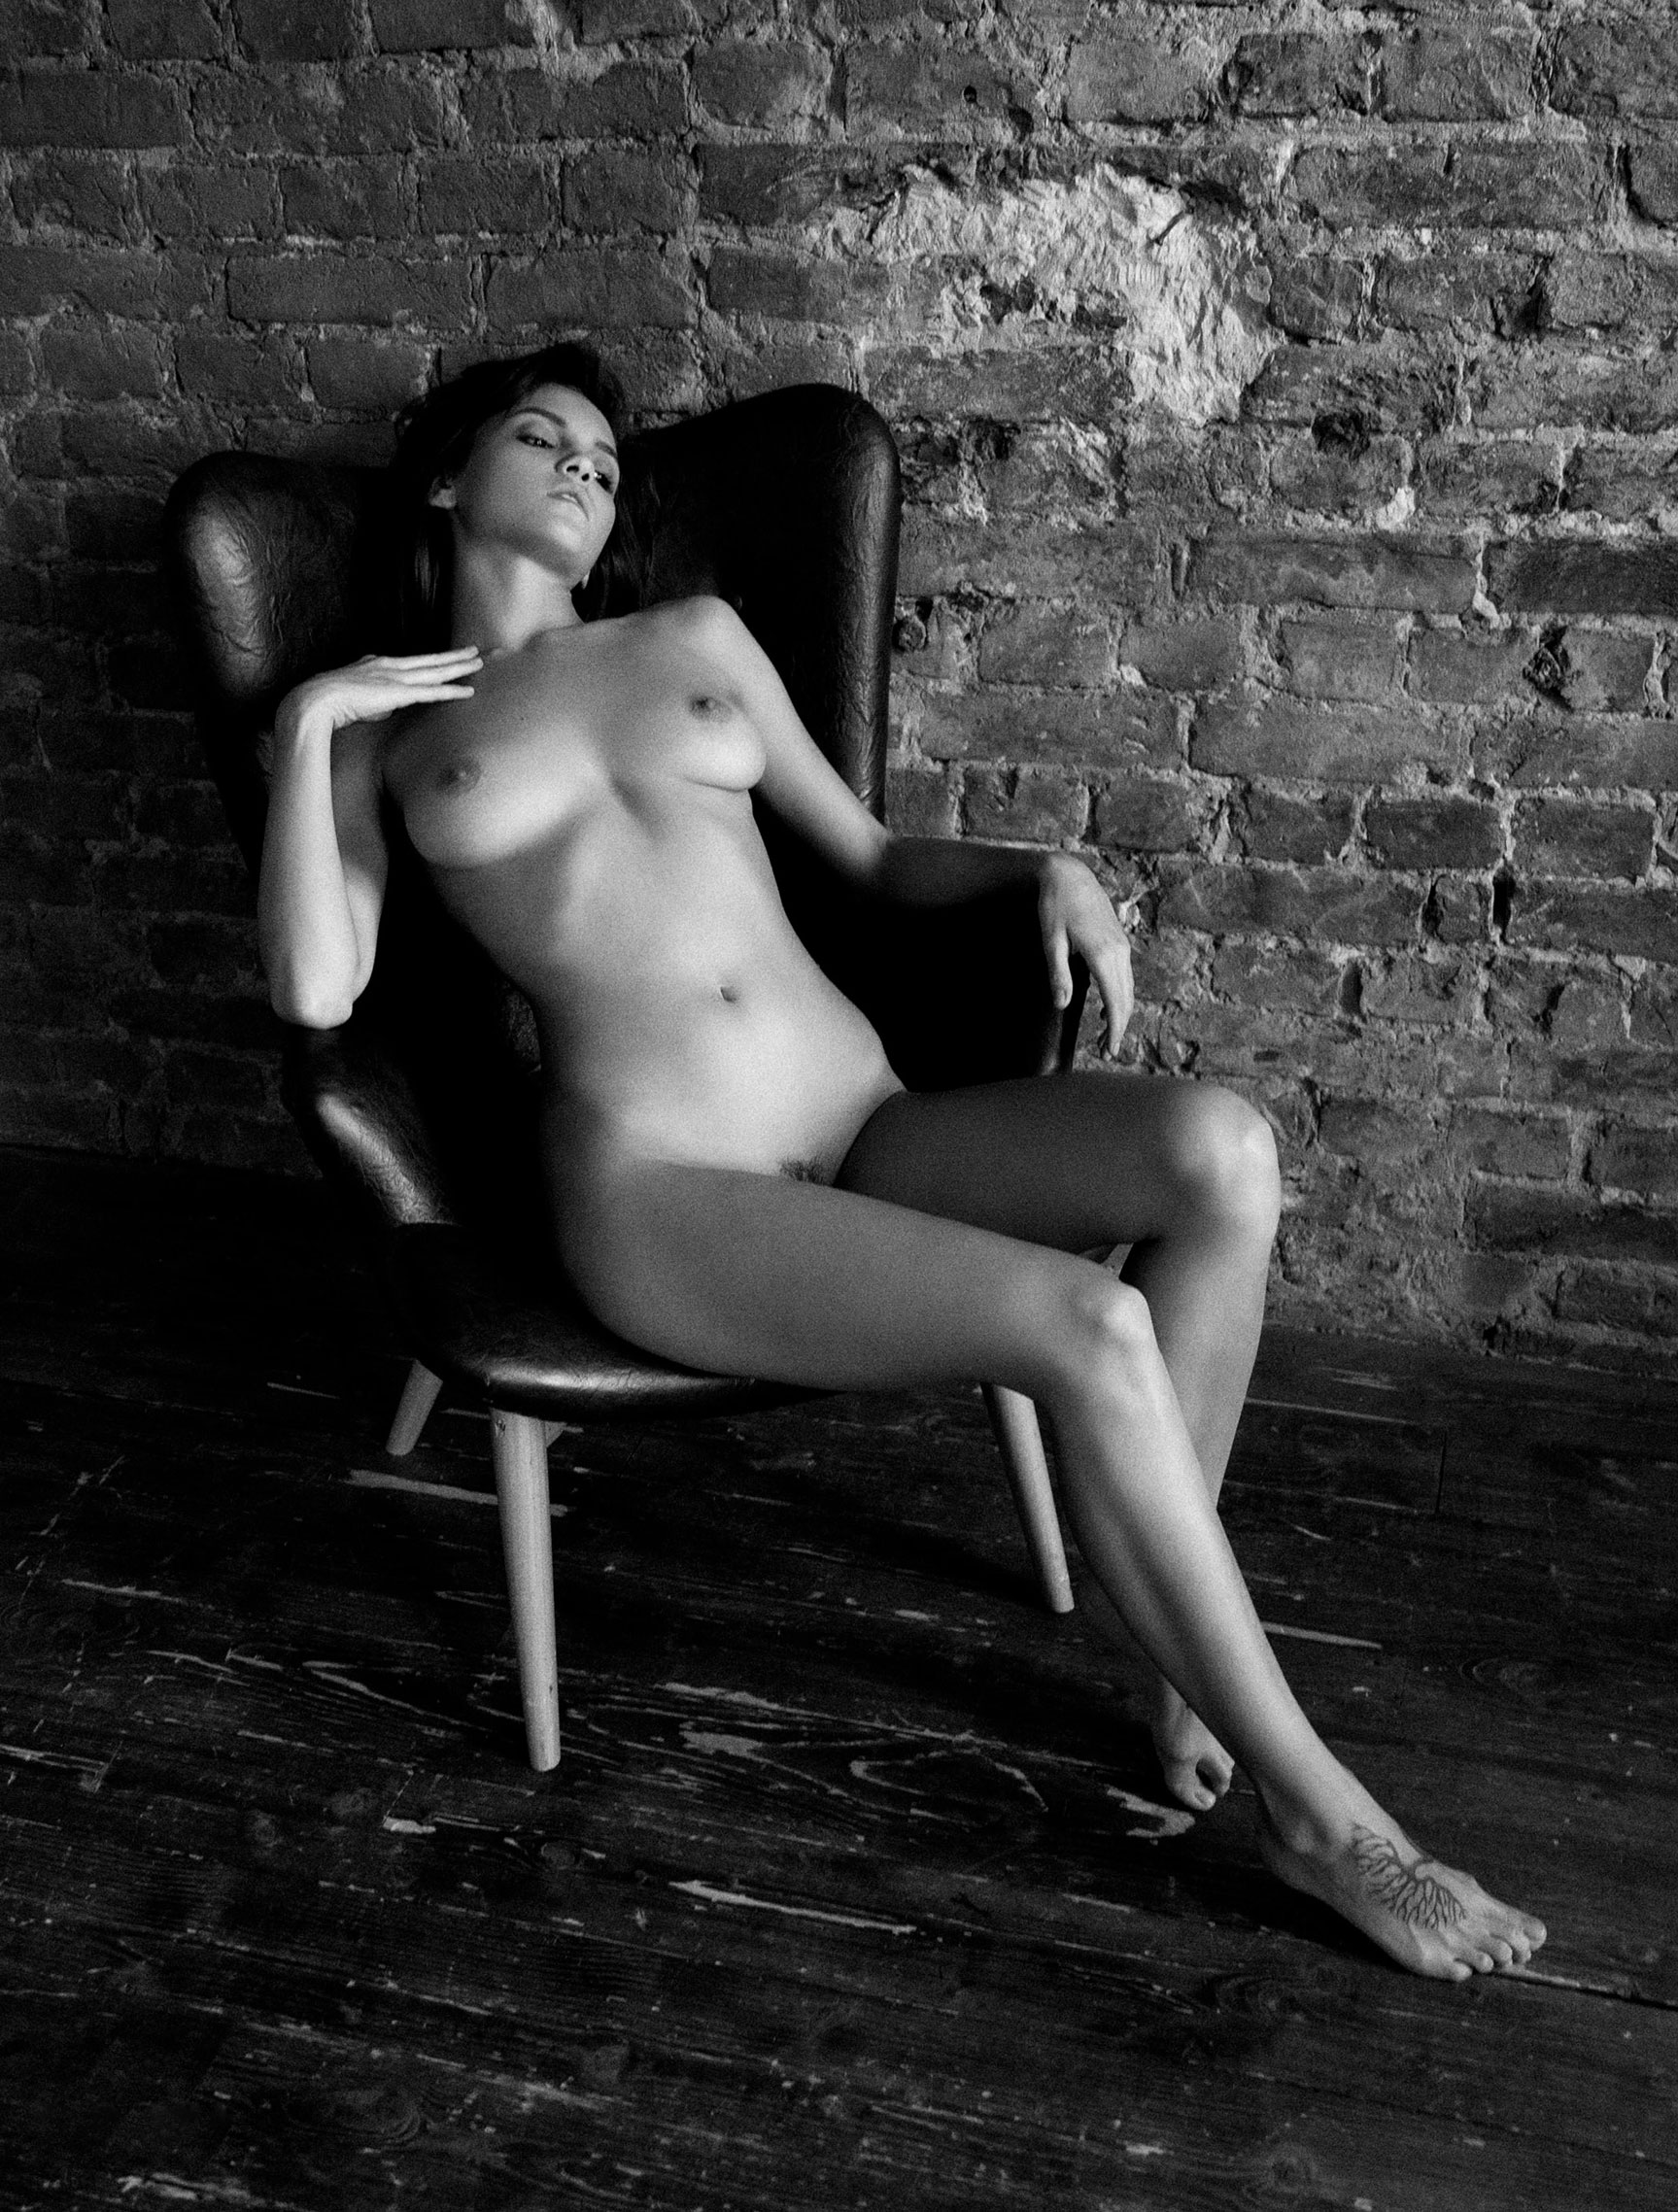 Oh what a woman / Maria Demina nude by Alexander-Maximilian Herman